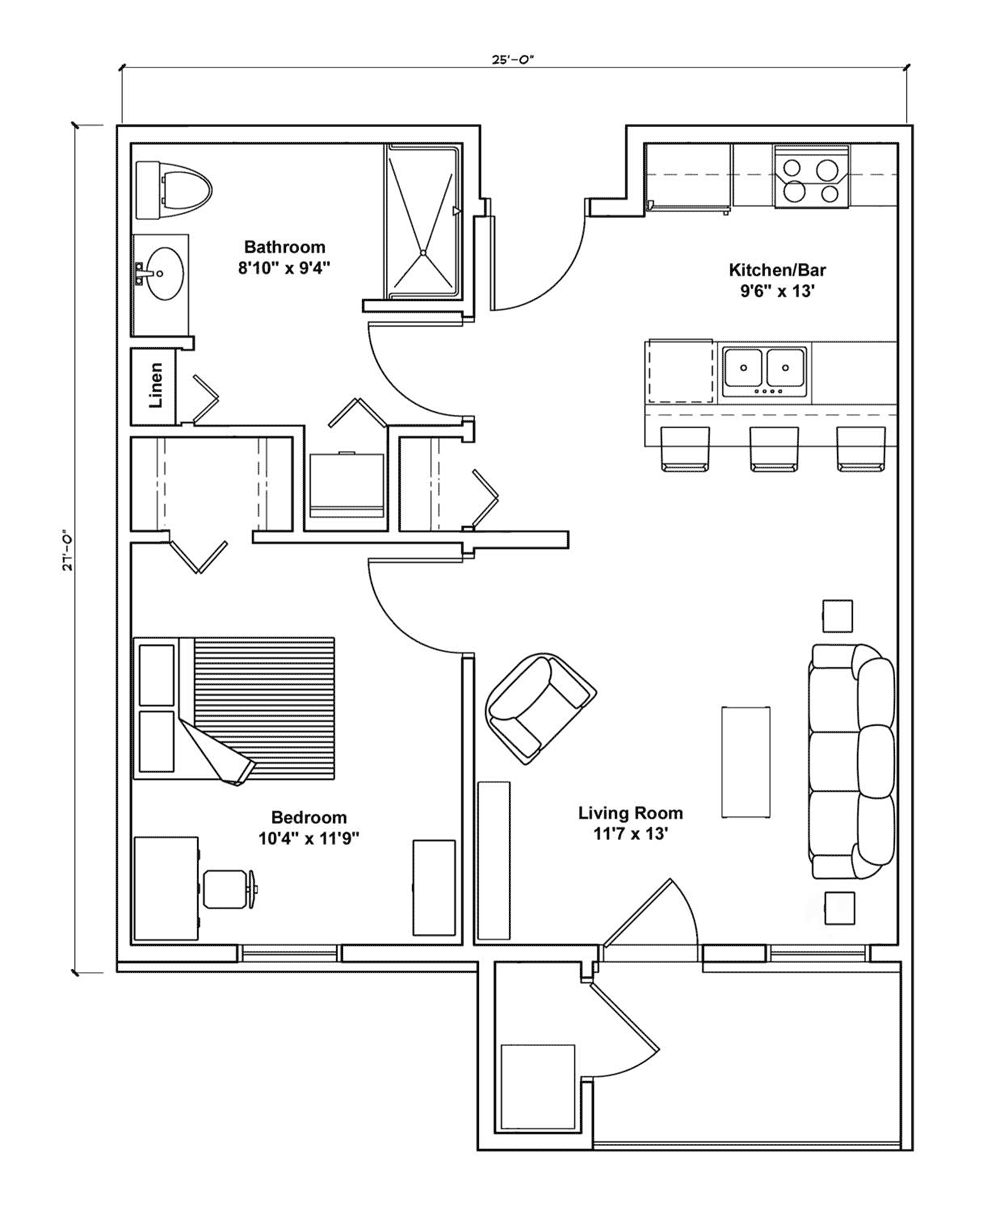 one bedroom layout.png